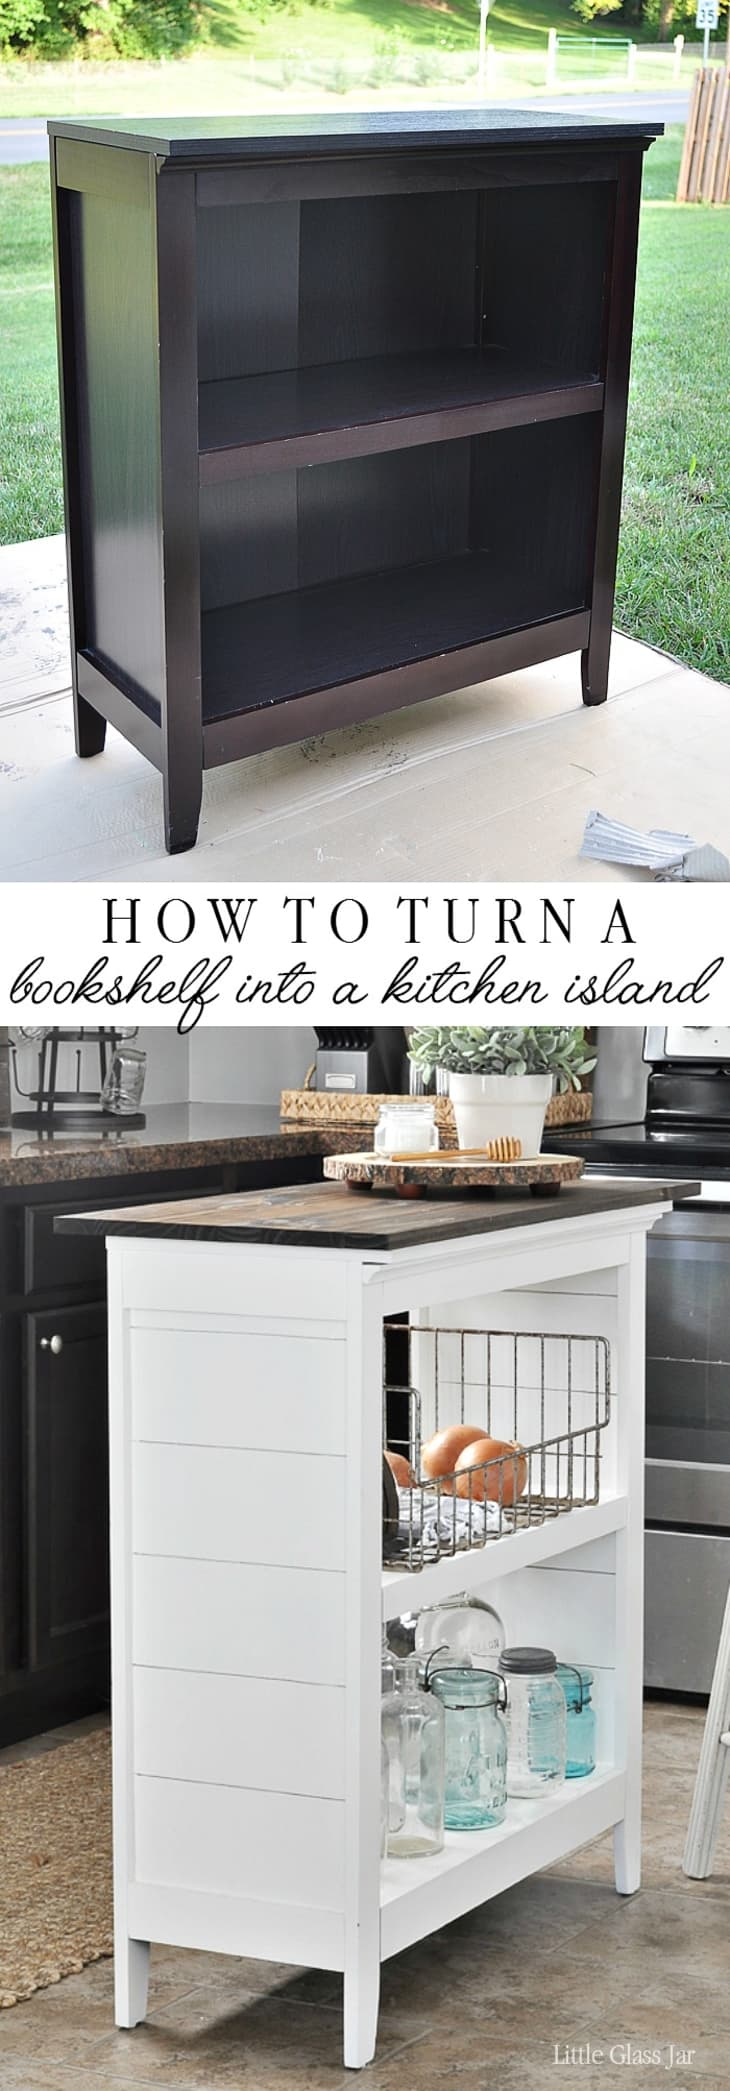 5 Smart Kitchen Islands In Small Spaces Kitchn